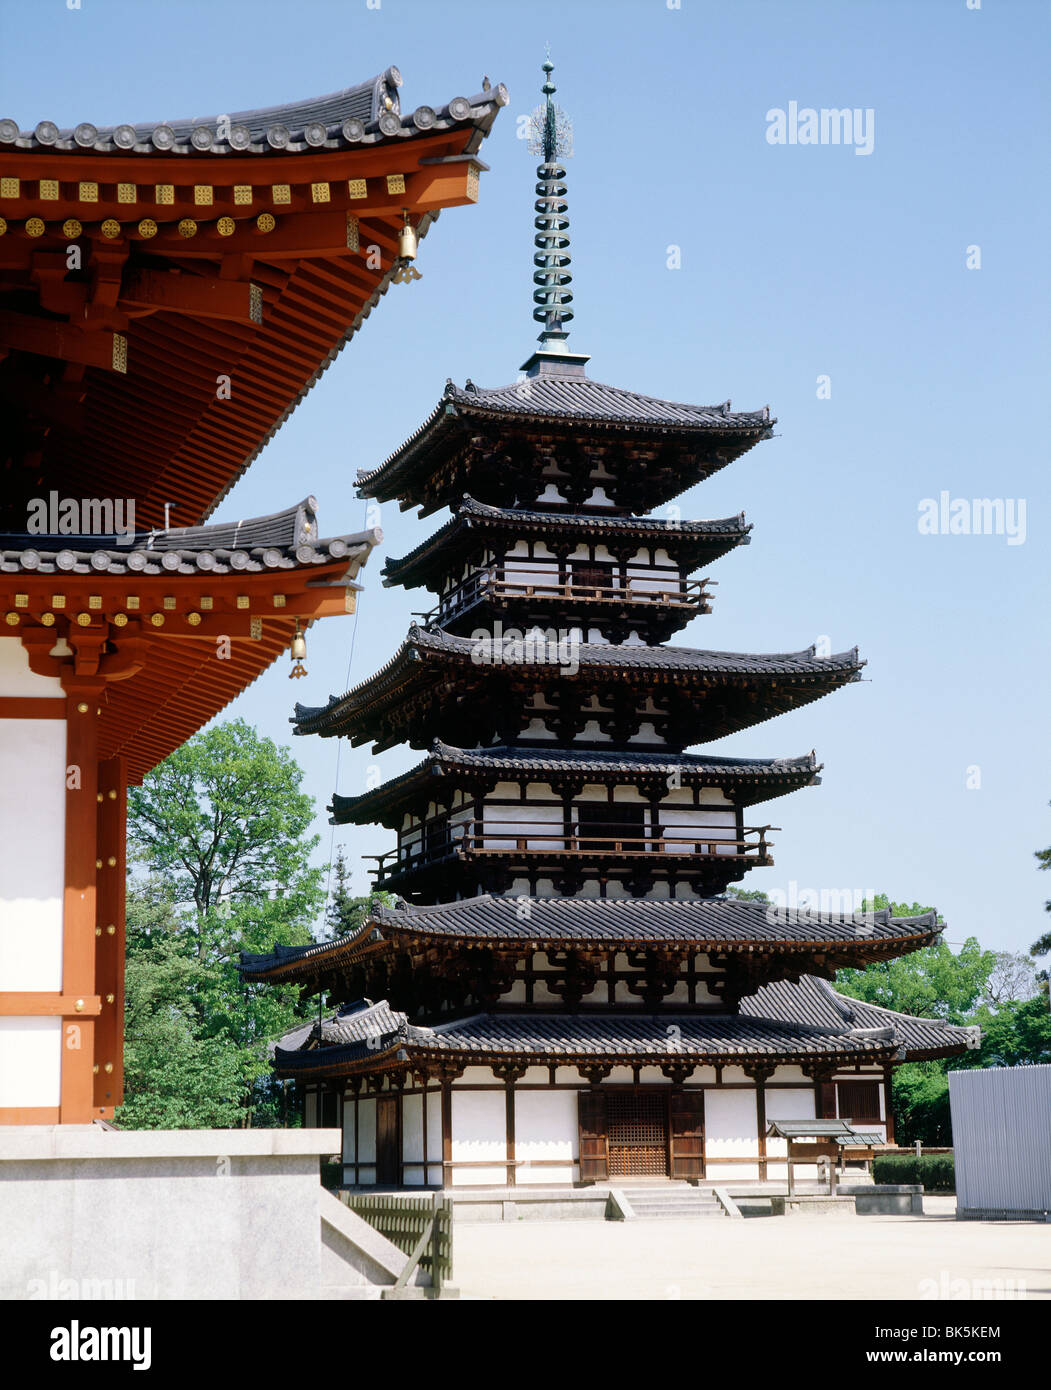 Yakushiji Temple, constructed by Emperor Temmu in the late 7th century, Nara, UNESCO World Heritage Site, Japan, - Stock Image